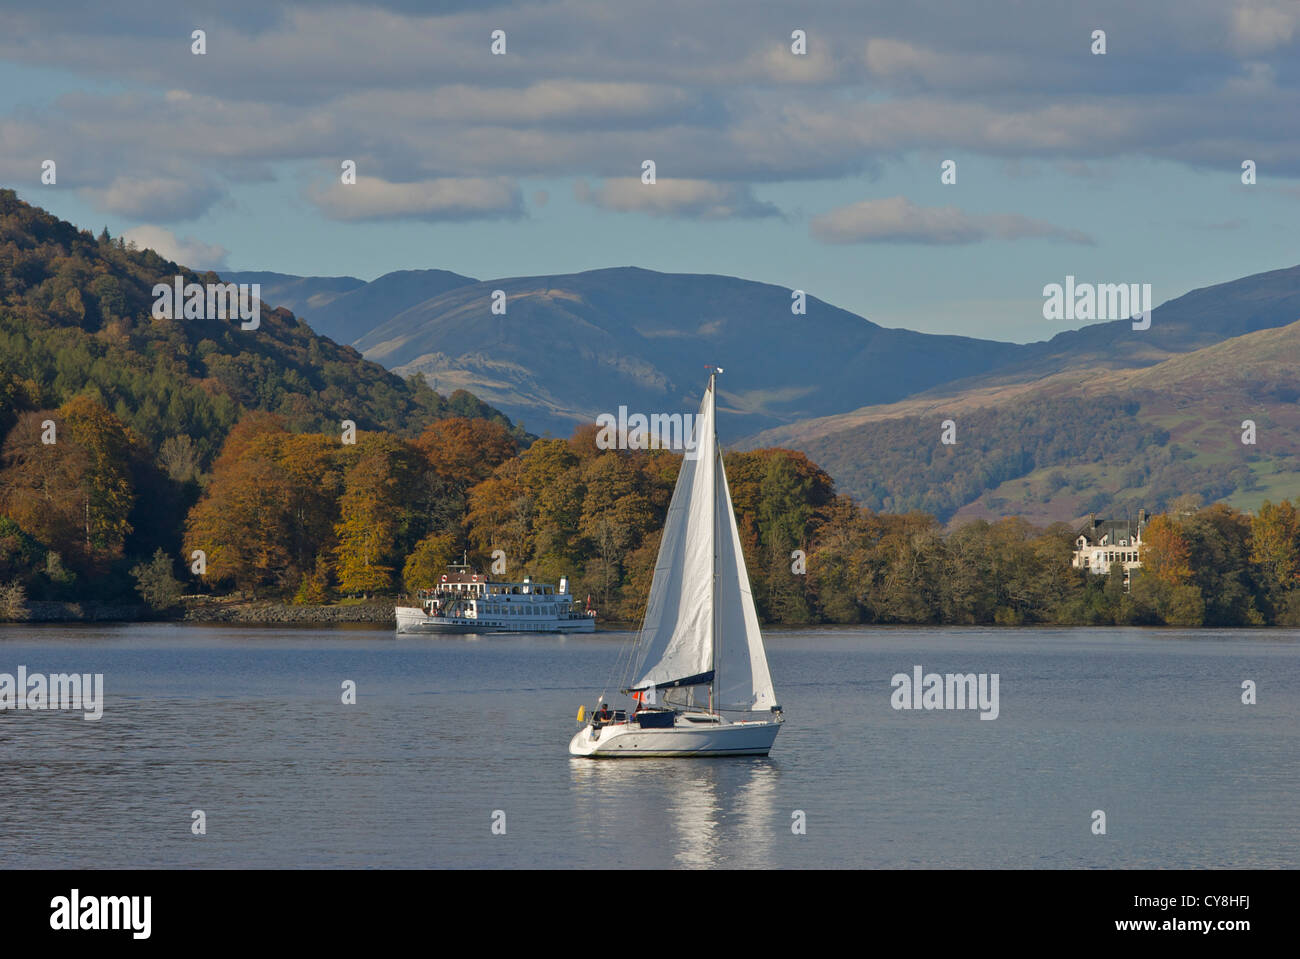 yacht-and-steamer-on-lake-windermere-lake-district-national-park-cumbria-CY8HFJ.jpg